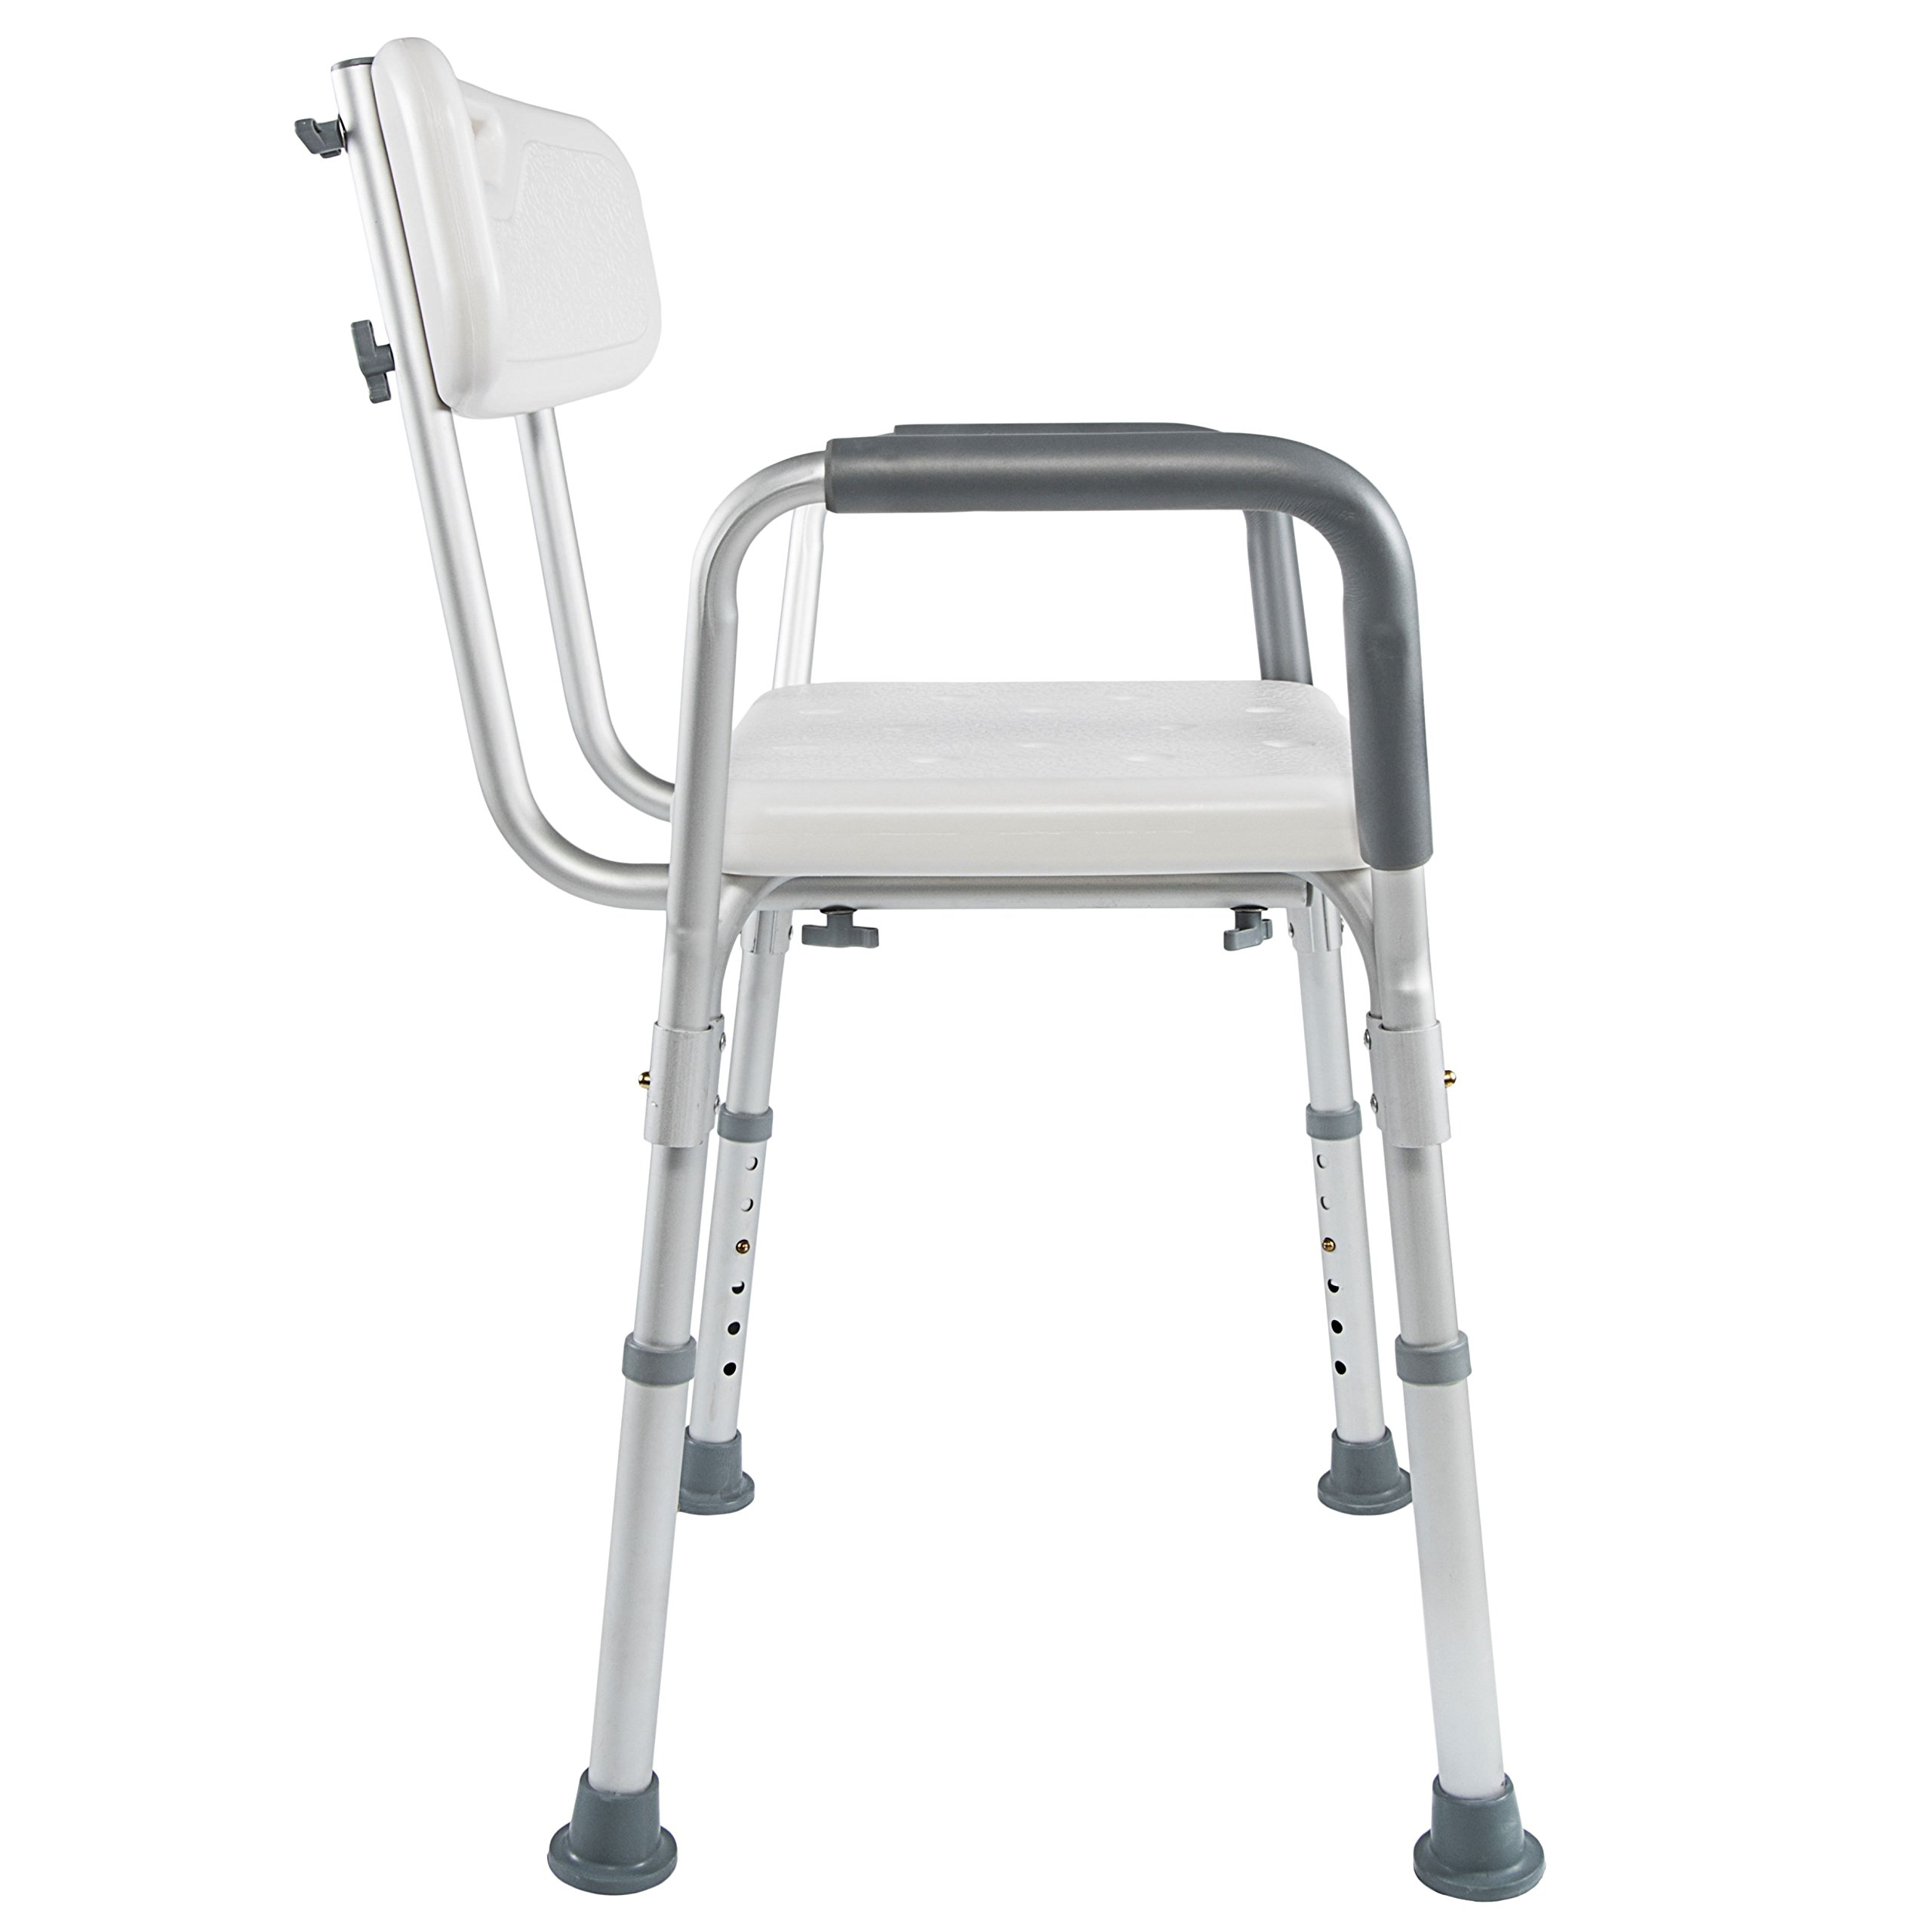 Medical Tool-Free Assembly Spa Bathtub Shower Lift Chair, Portable ...